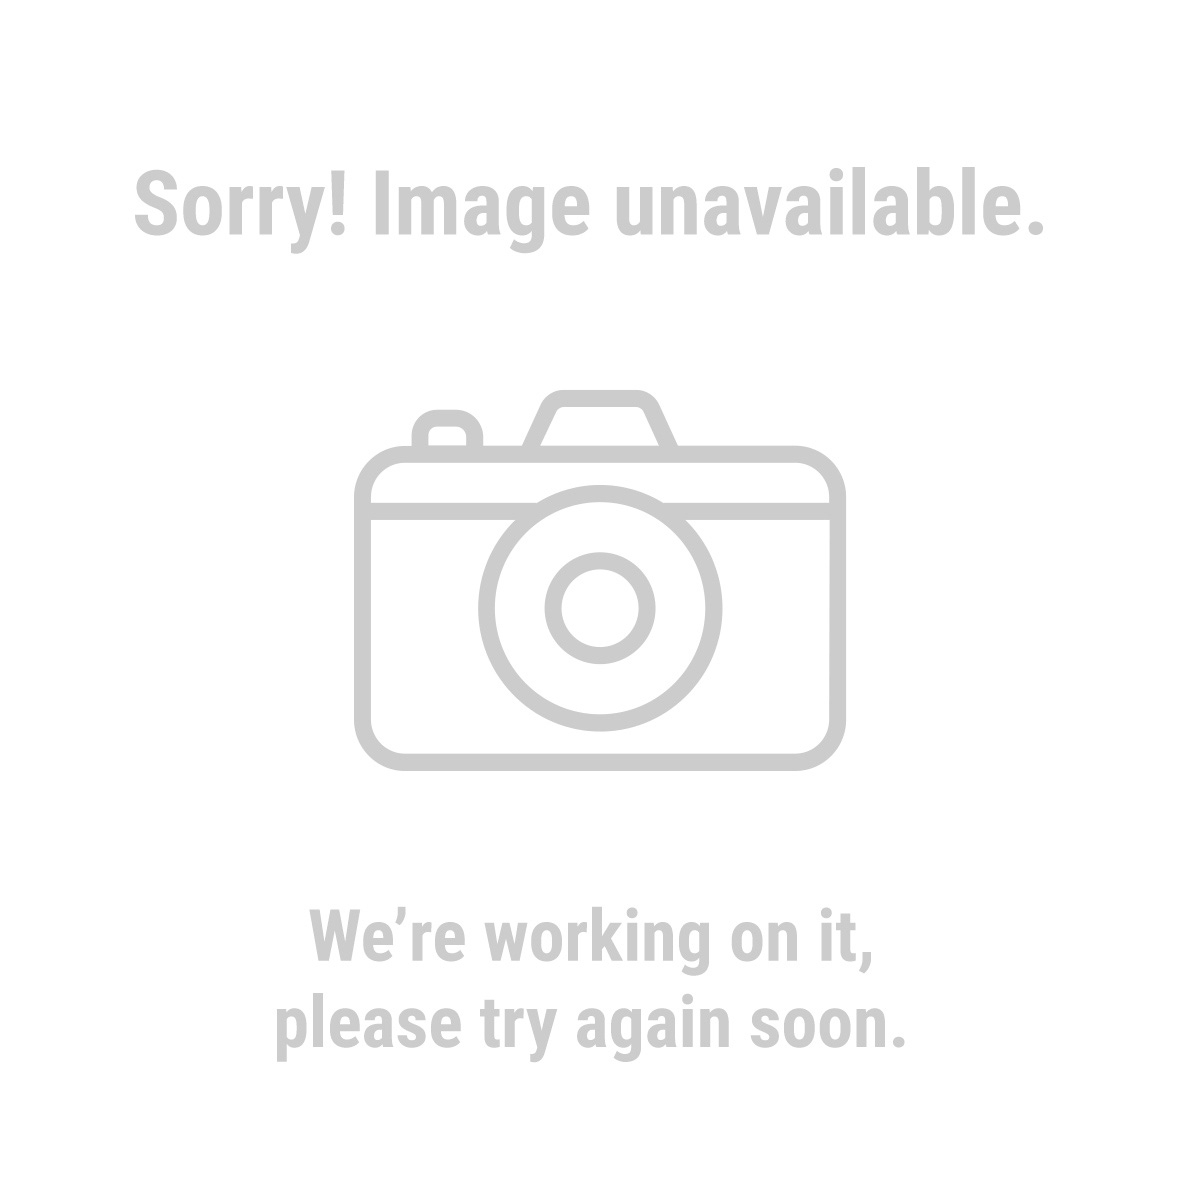 Pacific Hydrostar 69737 212 cc, 2500 PSI High Pressure Washer